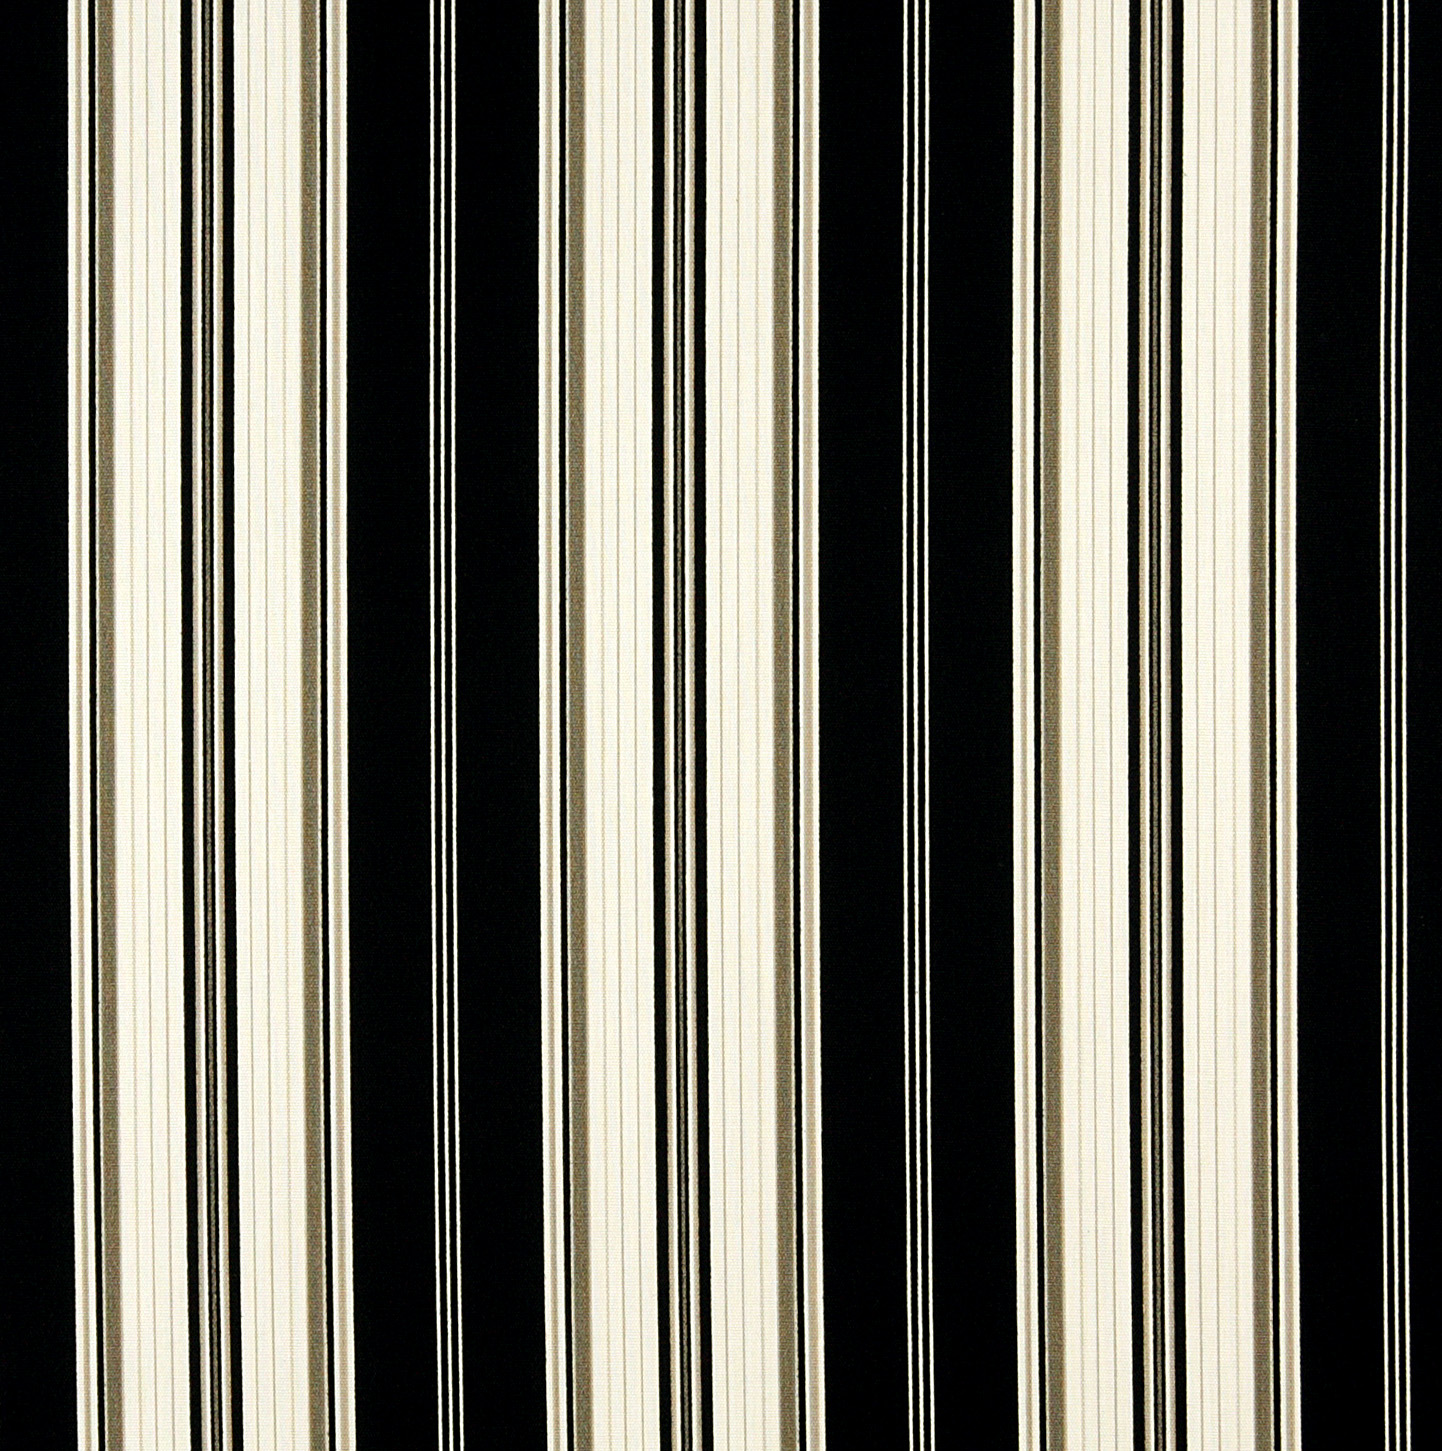 onyx stripe black and white stripes marine upholstery fabric. Black Bedroom Furniture Sets. Home Design Ideas